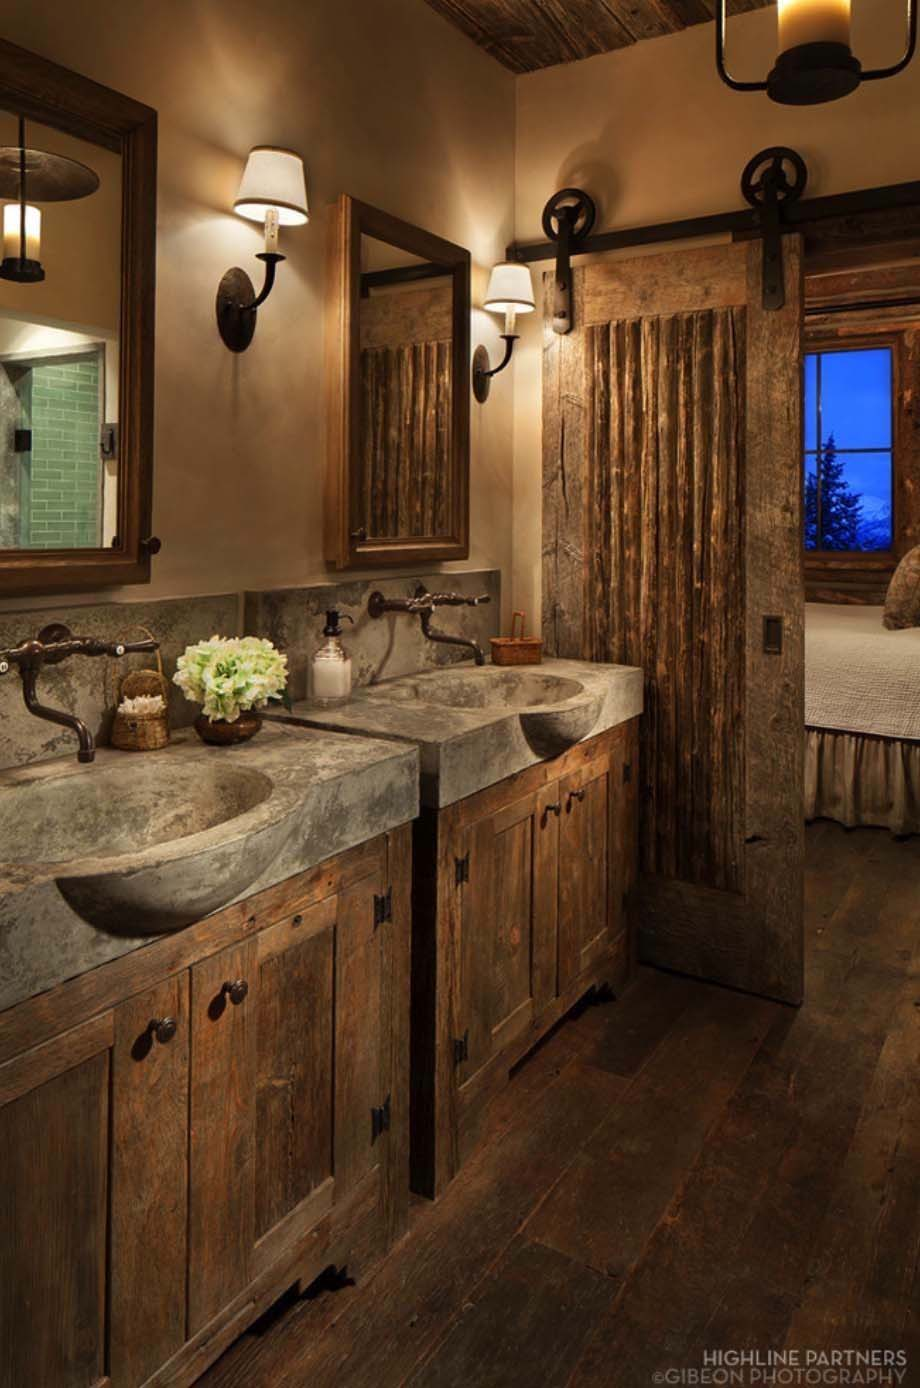 Rustic bathroom decor - Rustic Bathroom D Cor With Concrete Sinks And Barn Door